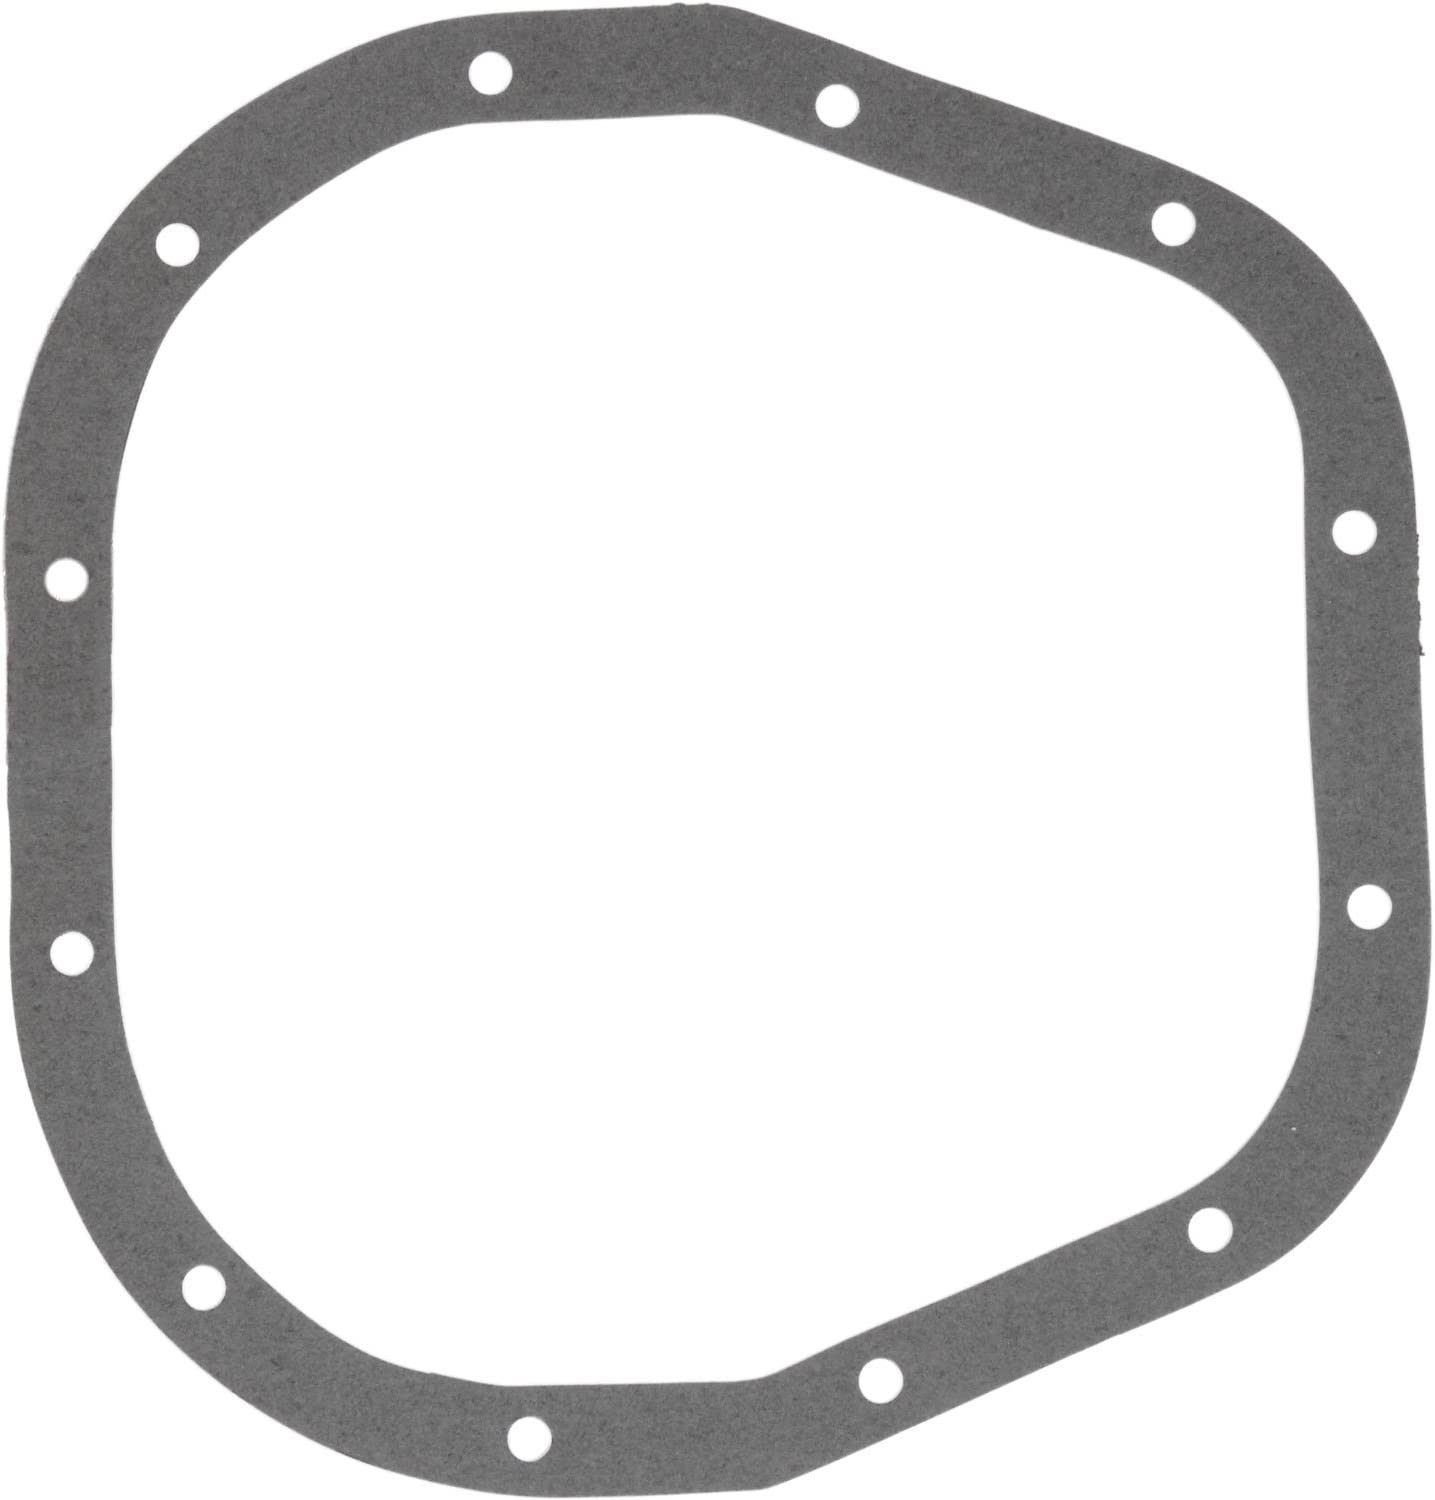 R0021 FORD TRUCK Differential Cover Gasket 12 Bolt